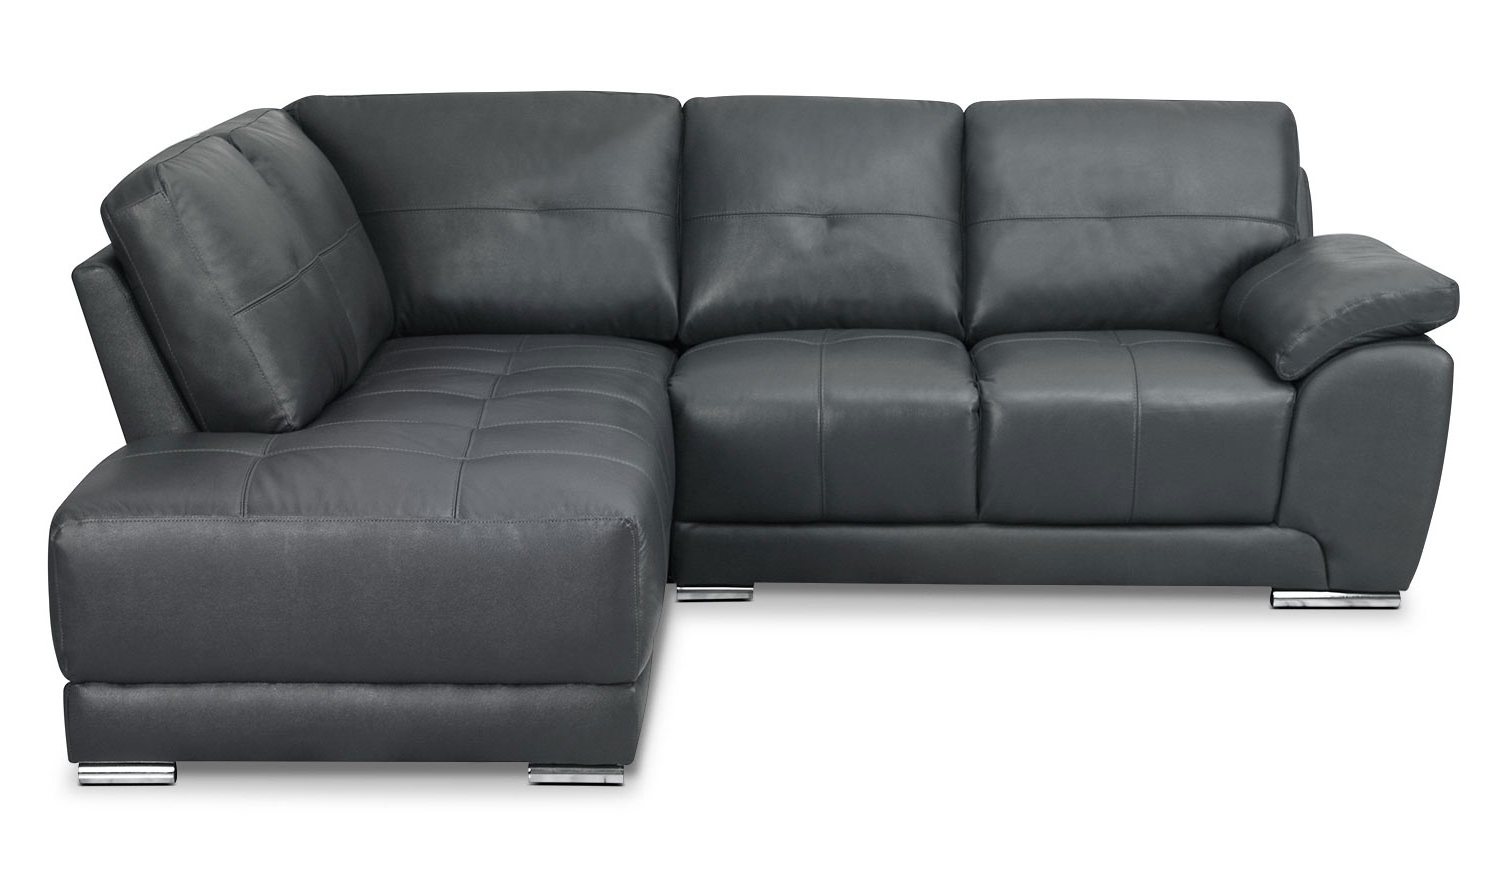 Sectional Sofas At The Brick Intended For Most Popular Elegant The Brick Sectionals – Buildsimplehome (View 10 of 15)